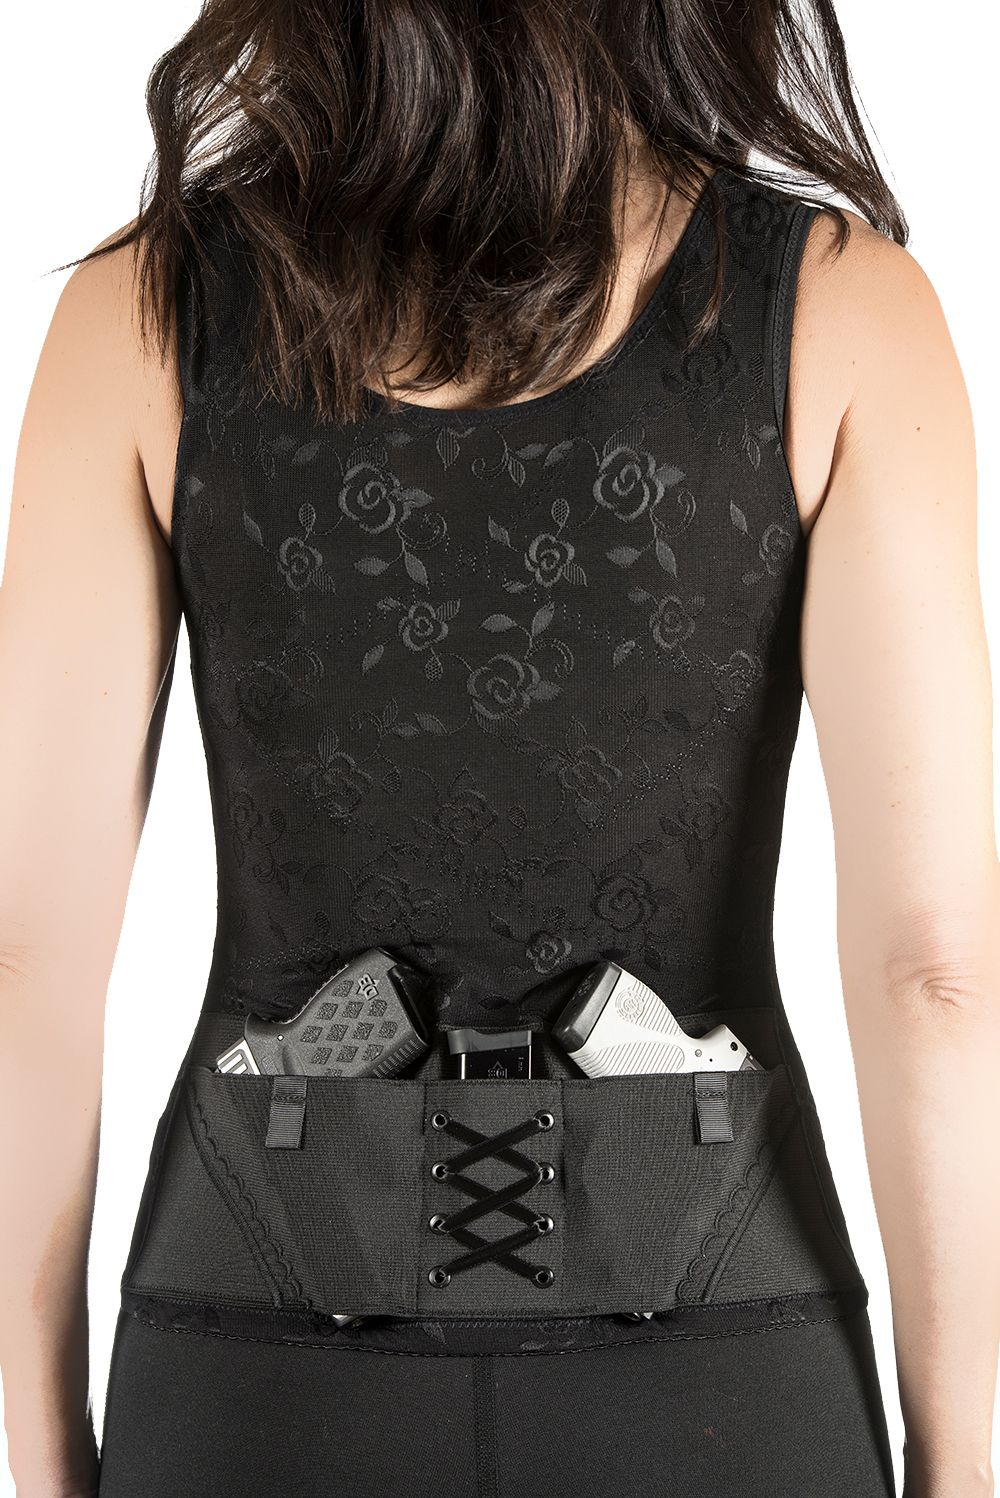 39d64628a13 Concealed Carry Clothing Corset is the all-in-one Holster and Shapewear  Solution